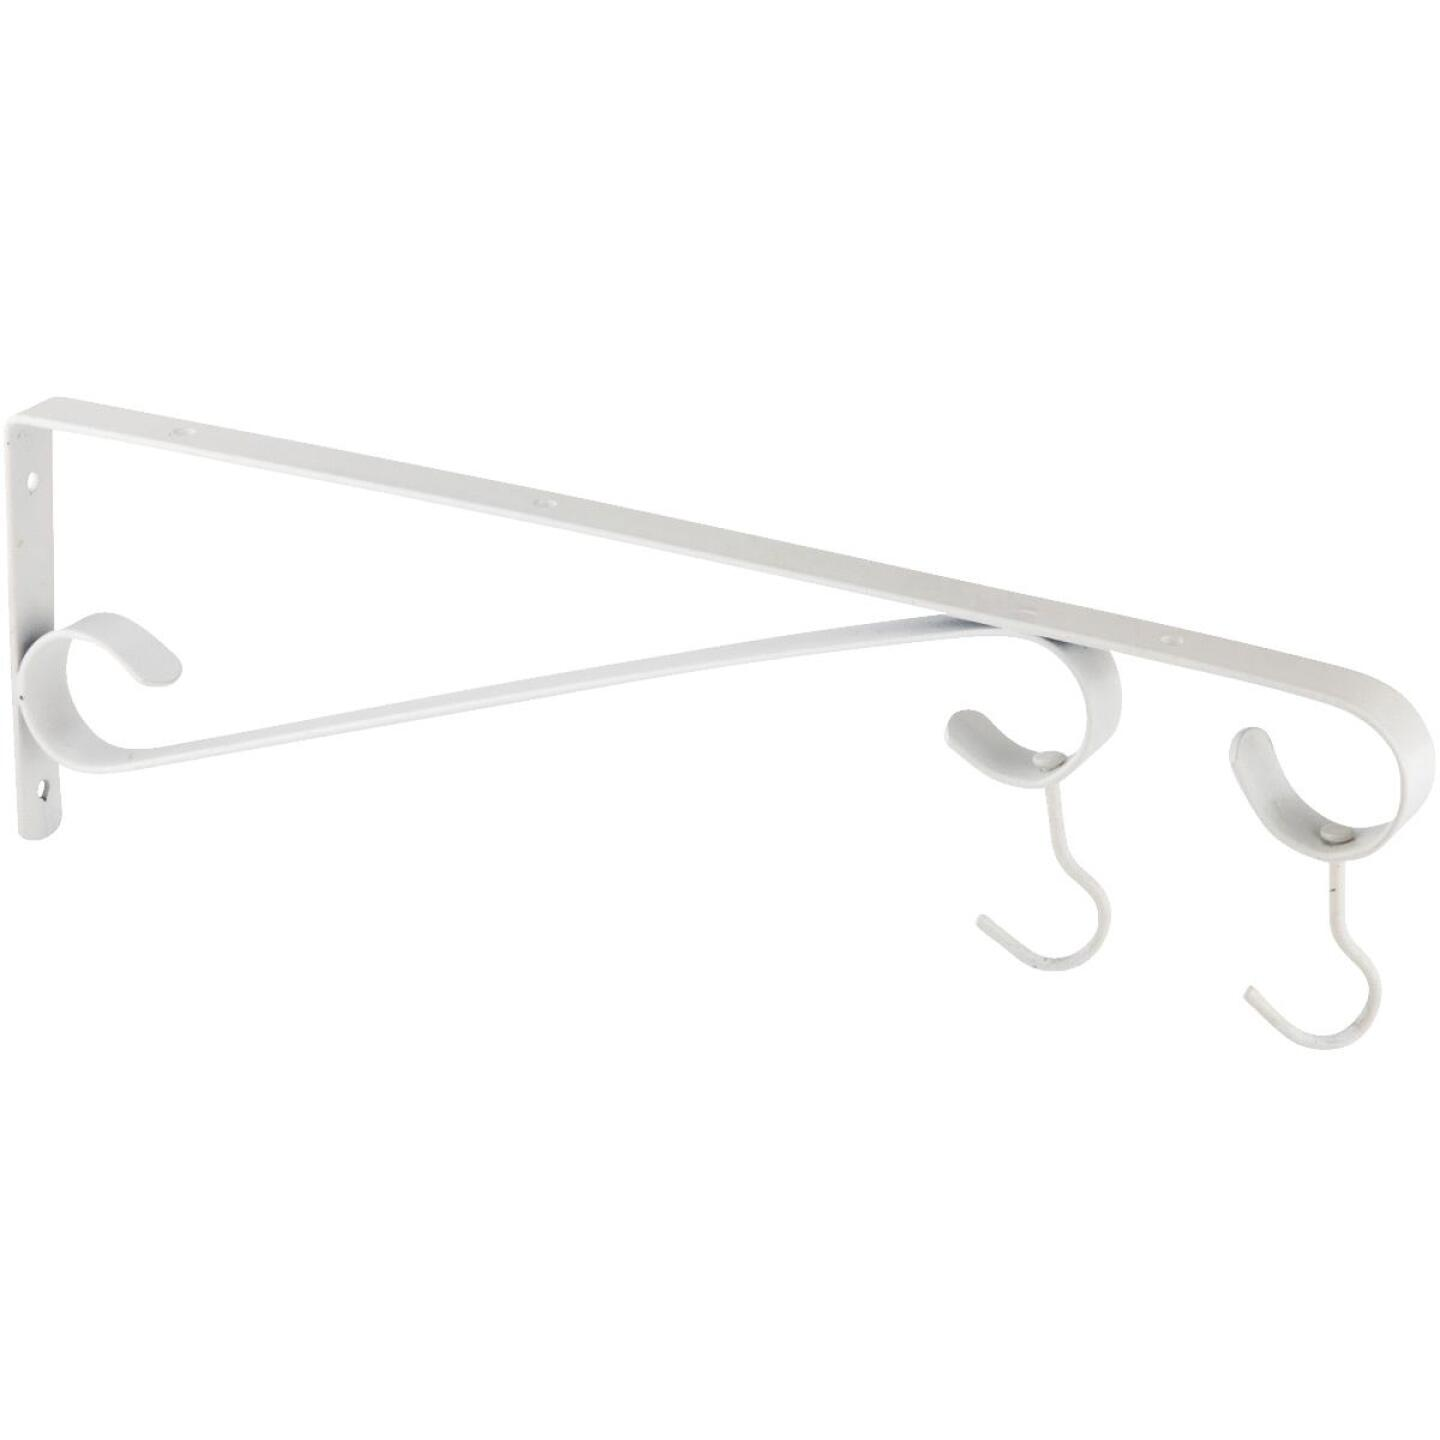 National 15 In. White Steel Hanging Plant Bracket Image 2